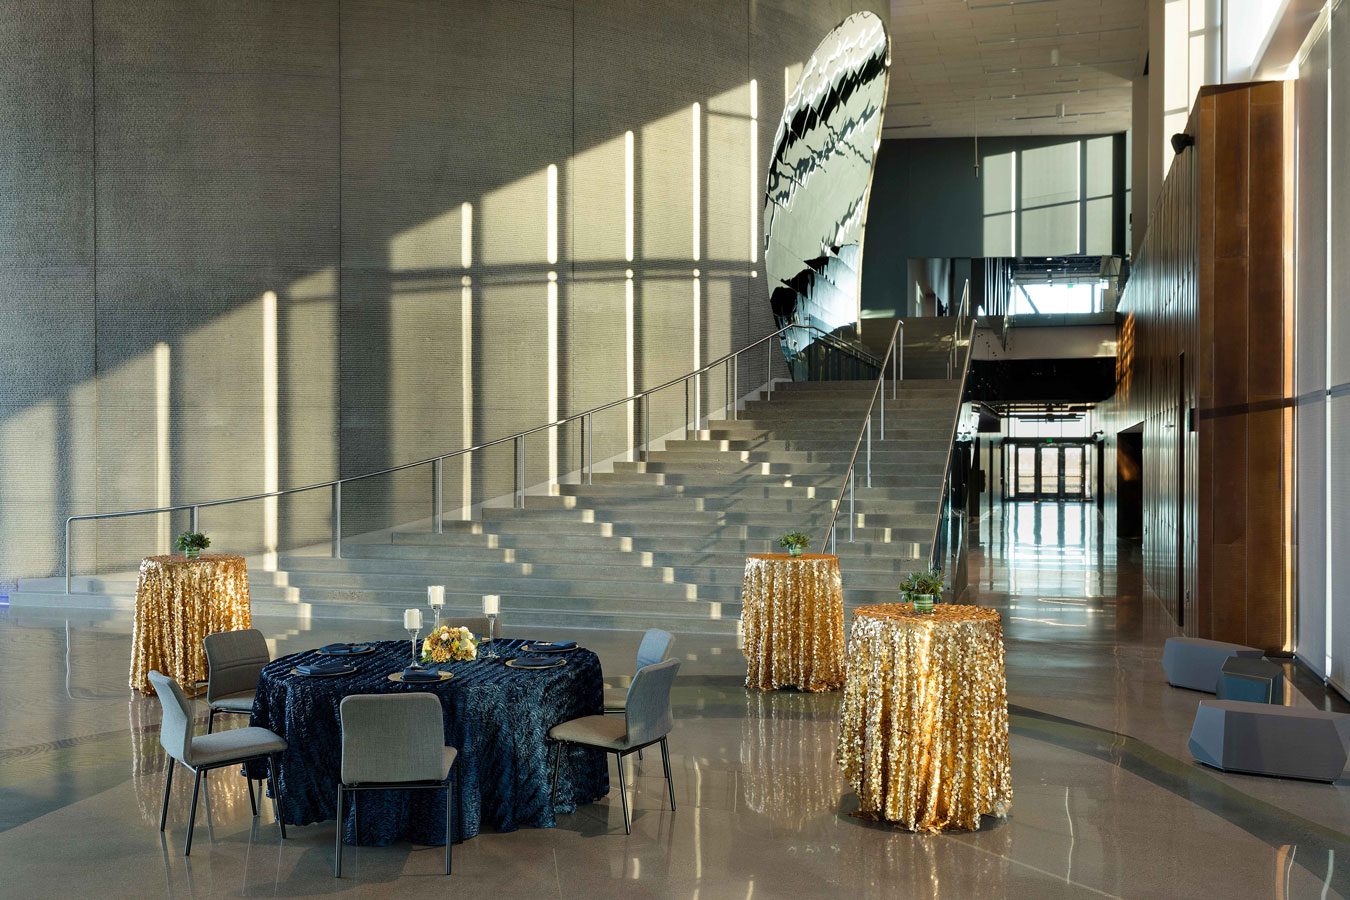 Gold-lamé-covered high top tables in Horizon Hall, with grand staircase and reflective curved wall behind